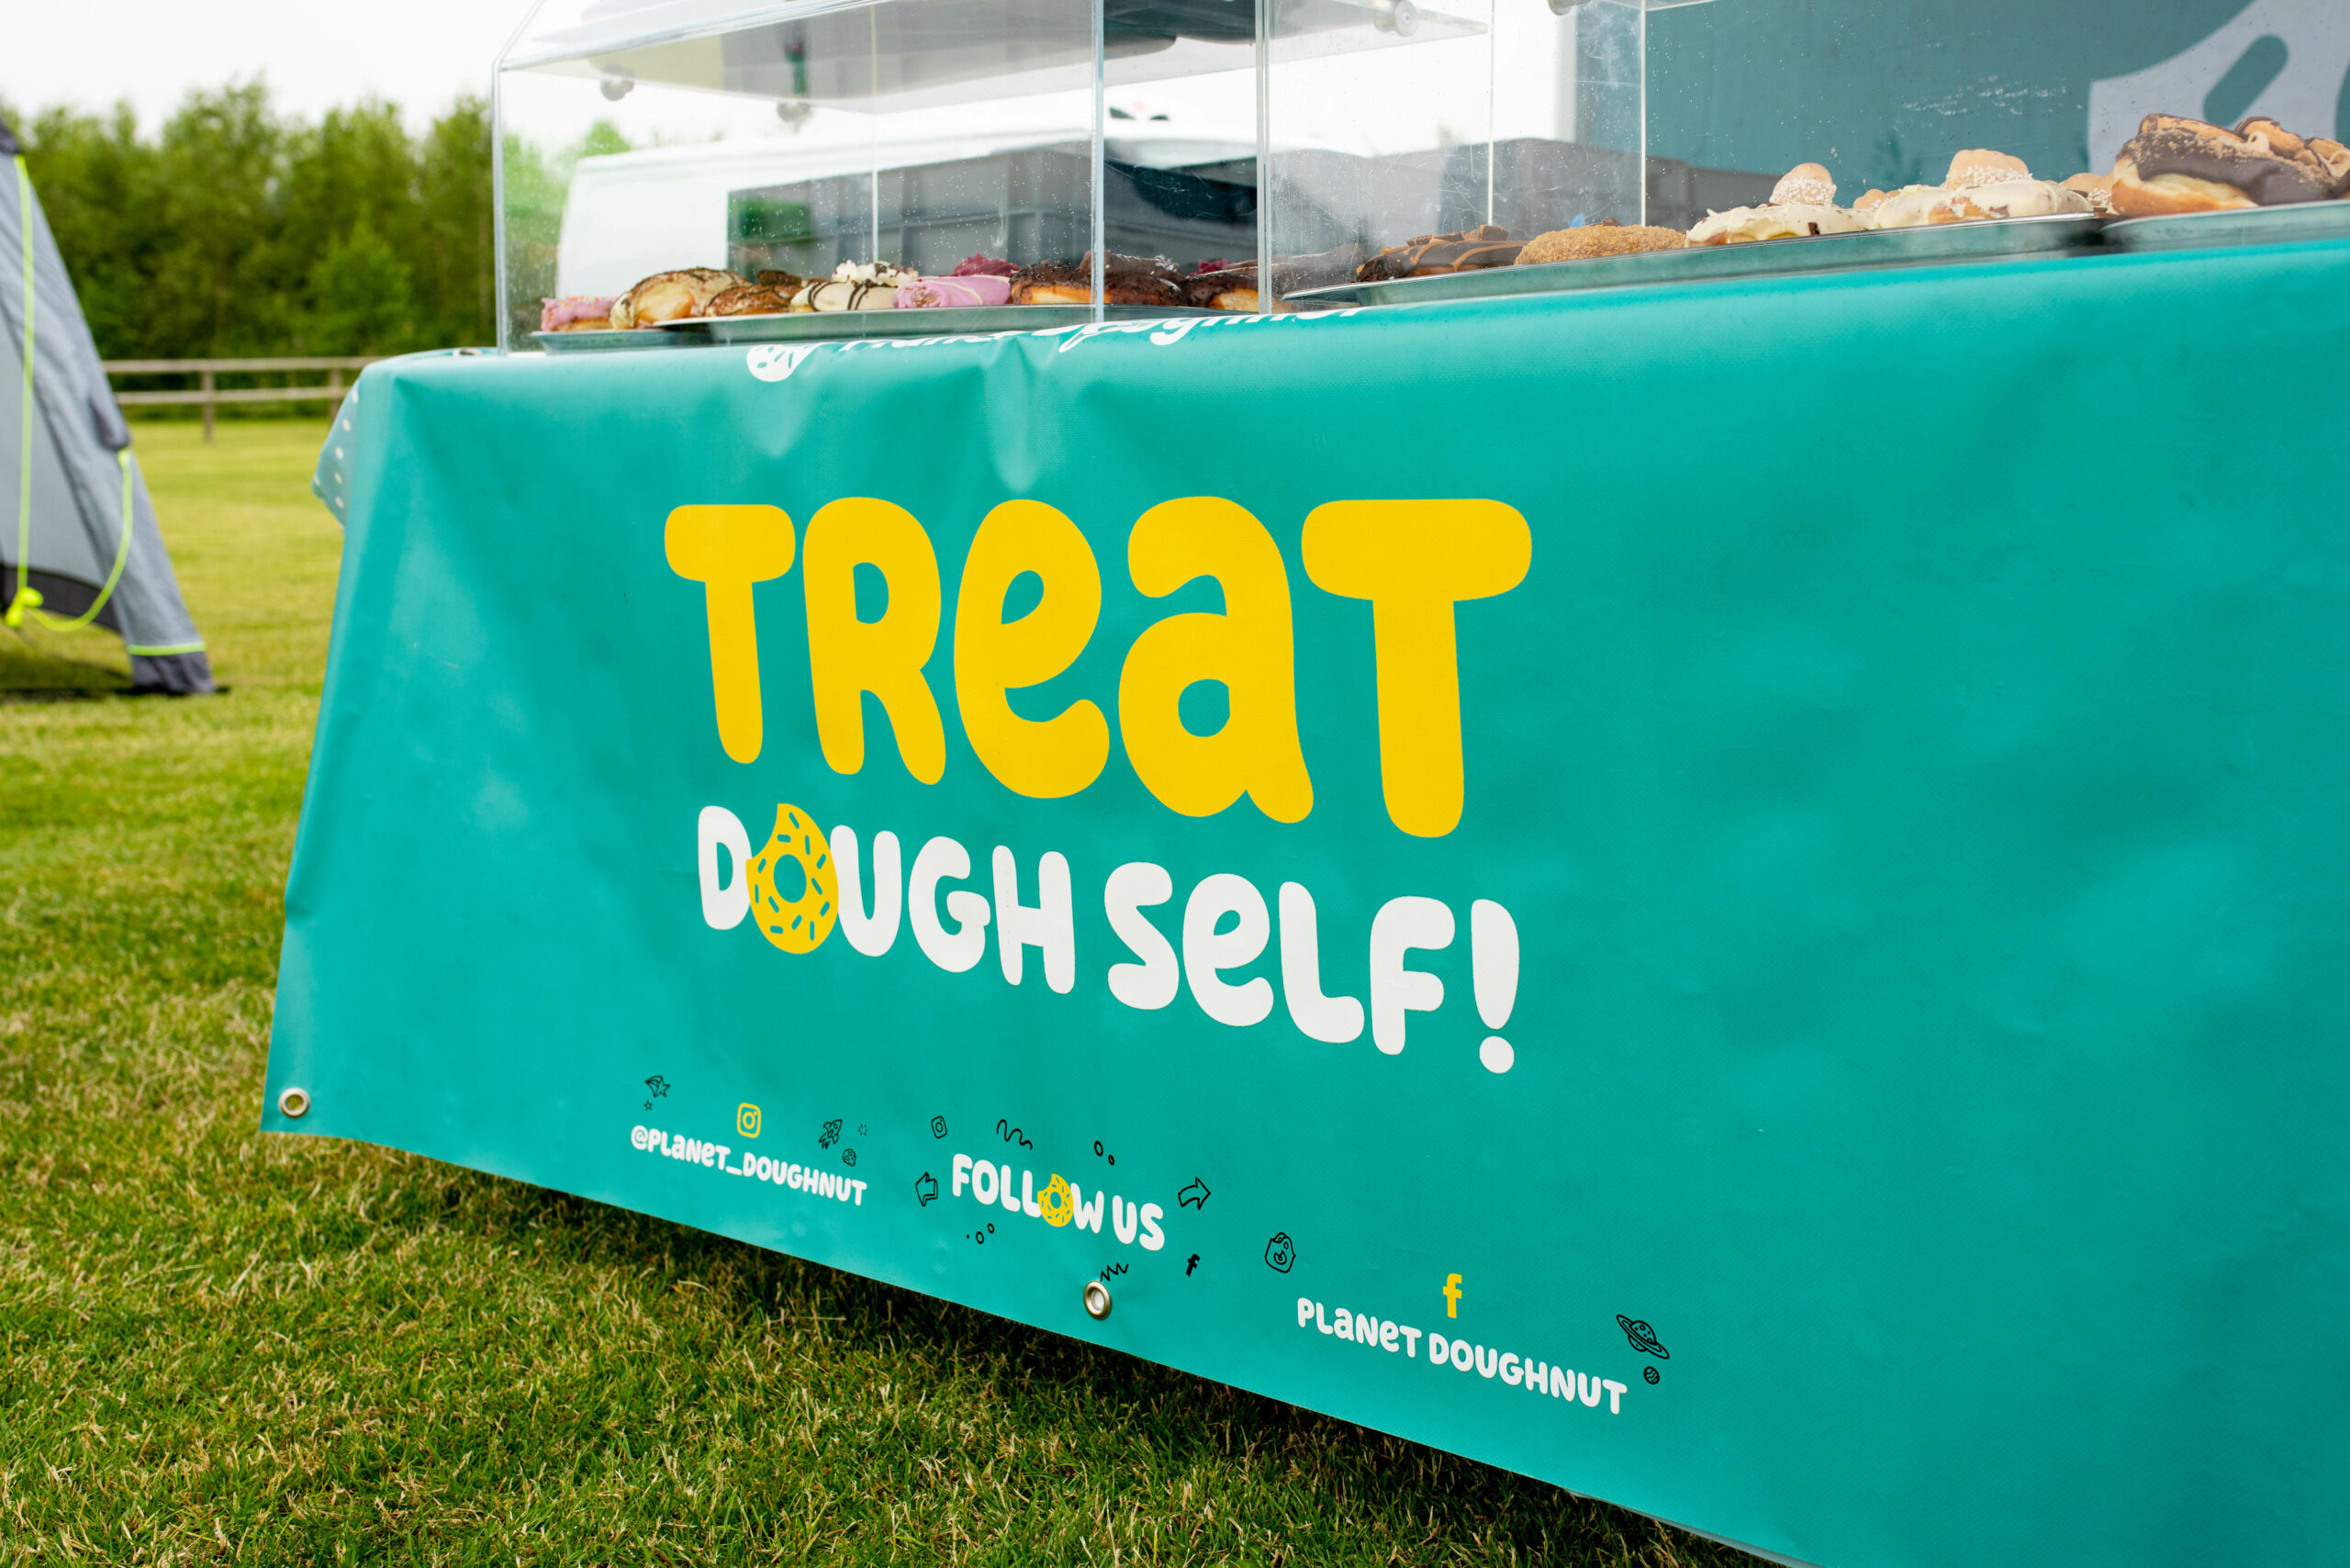 Planet Doughnut @ Events Sunday 4th July 2021